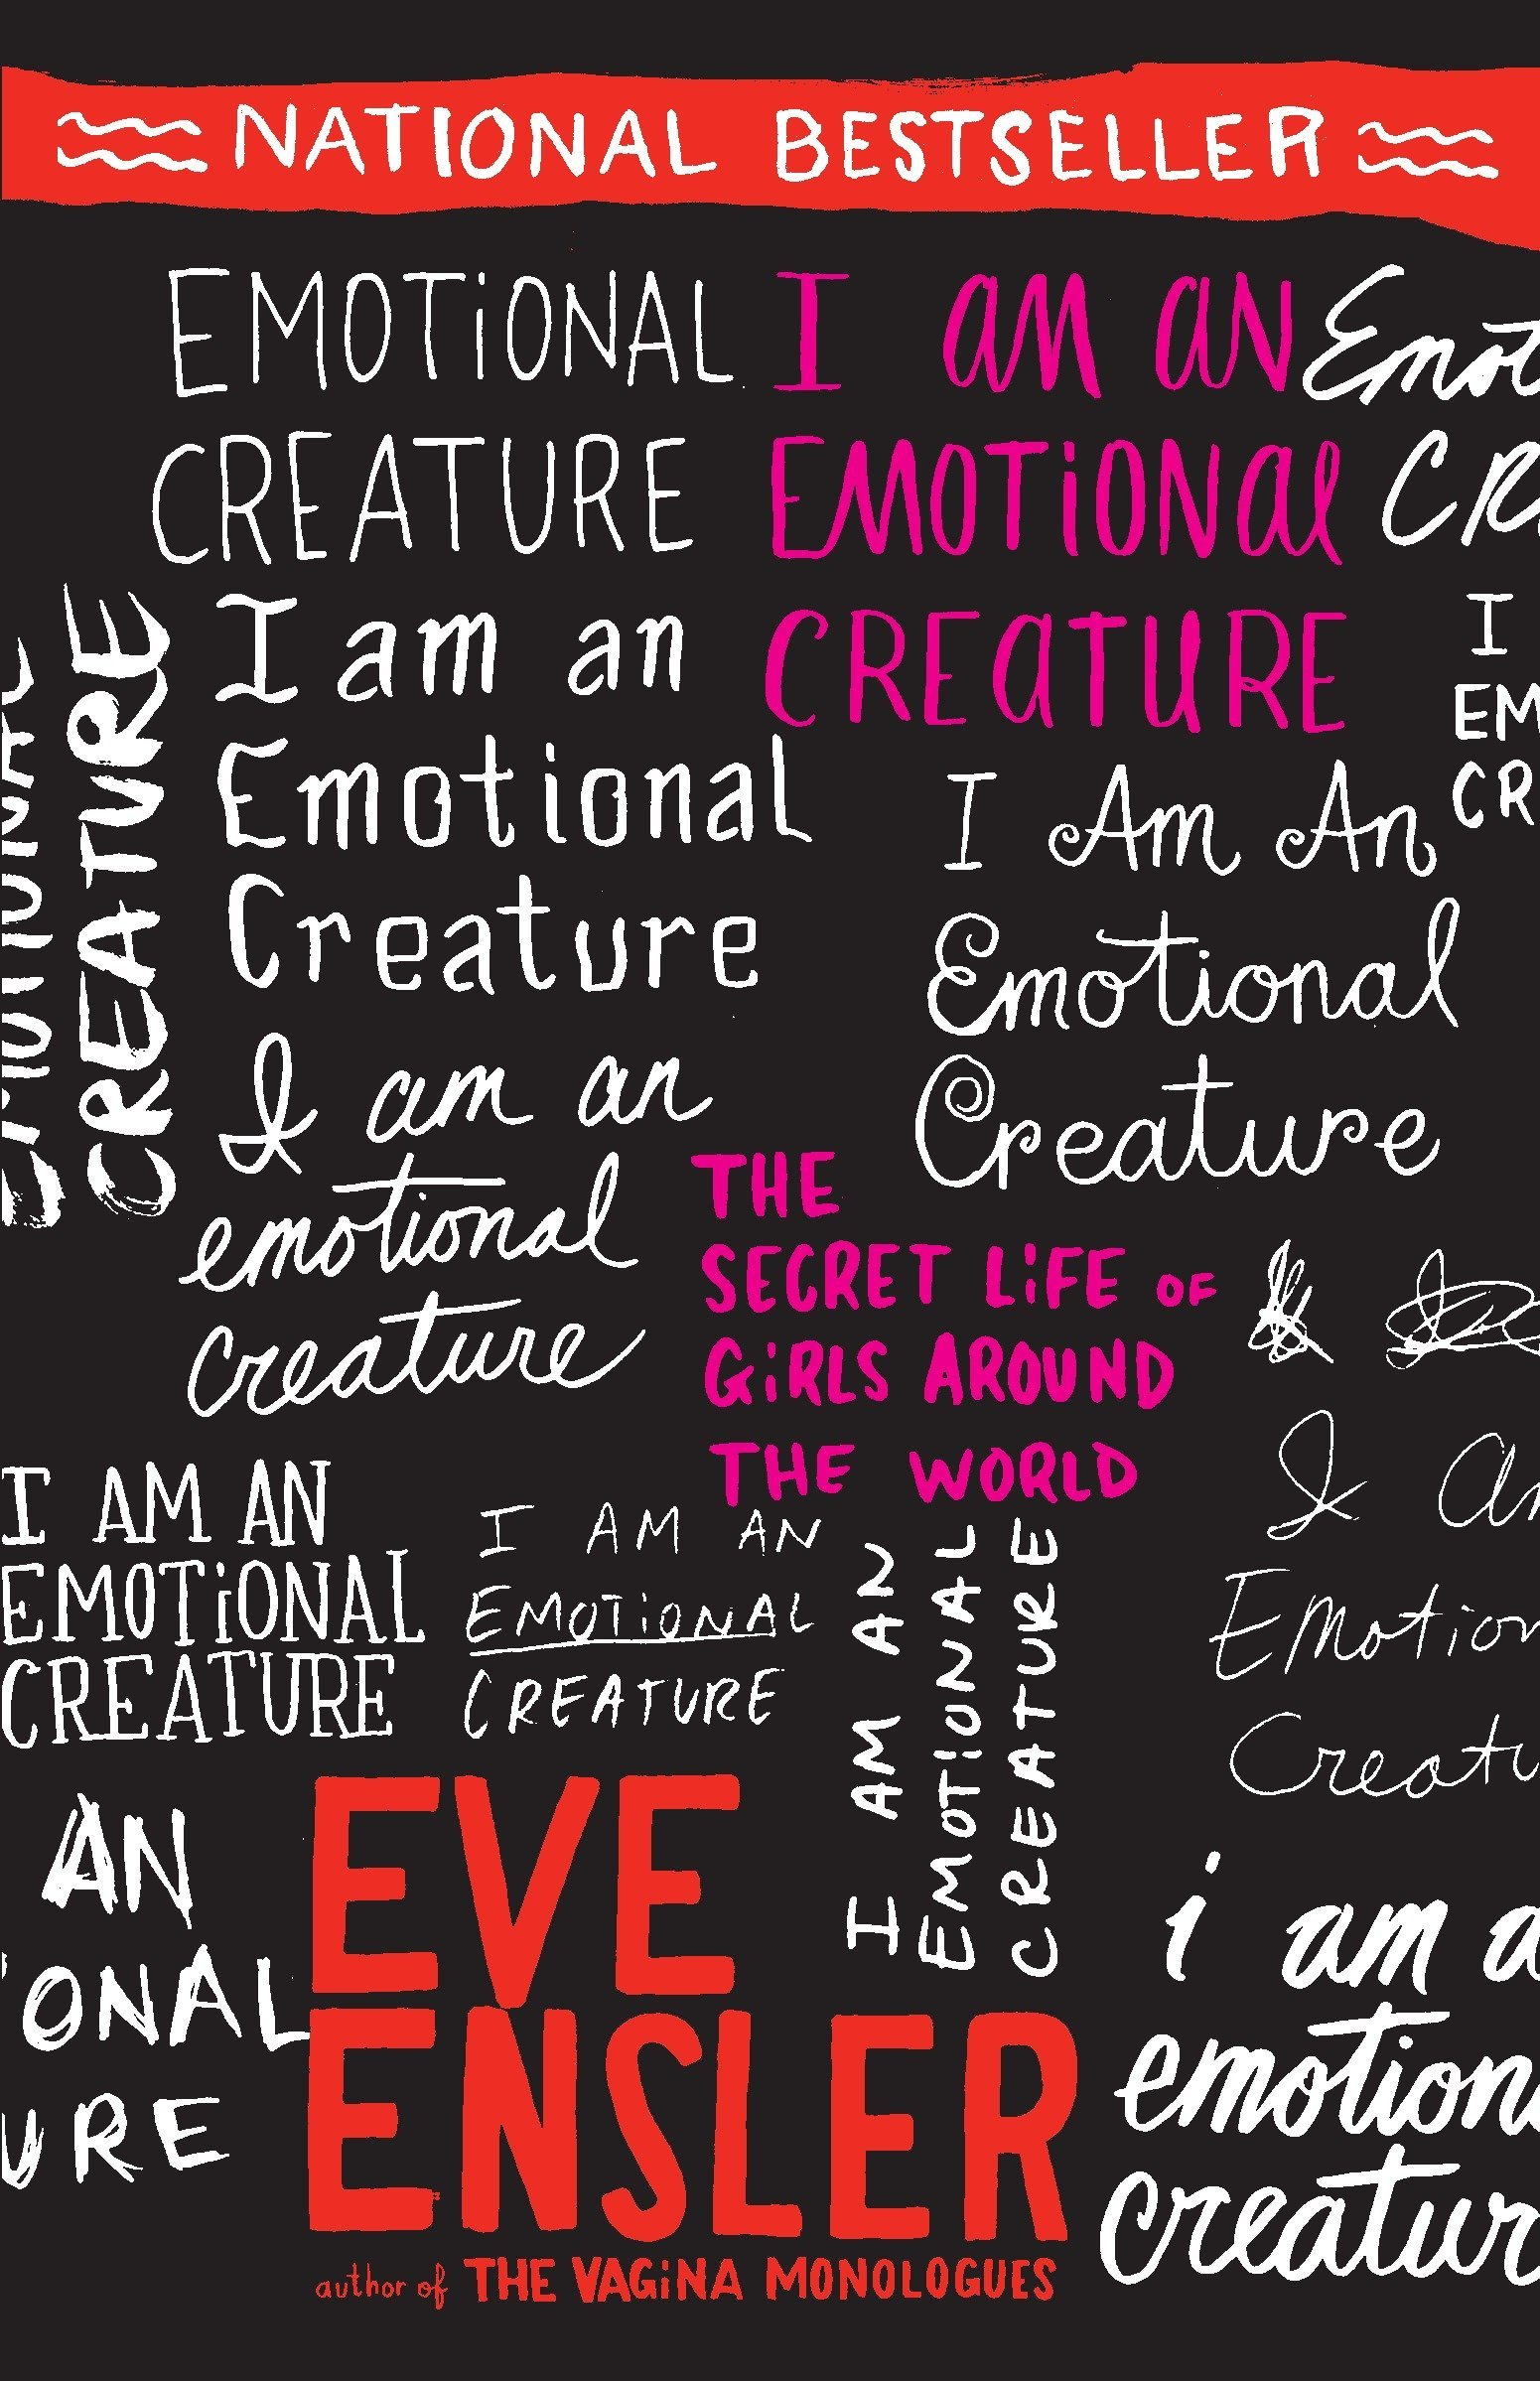 I Am an Emotional Creature: The Secret Life of Girls Around the World: Eve  Ensler: 9780812970166: Amazon.com: Books